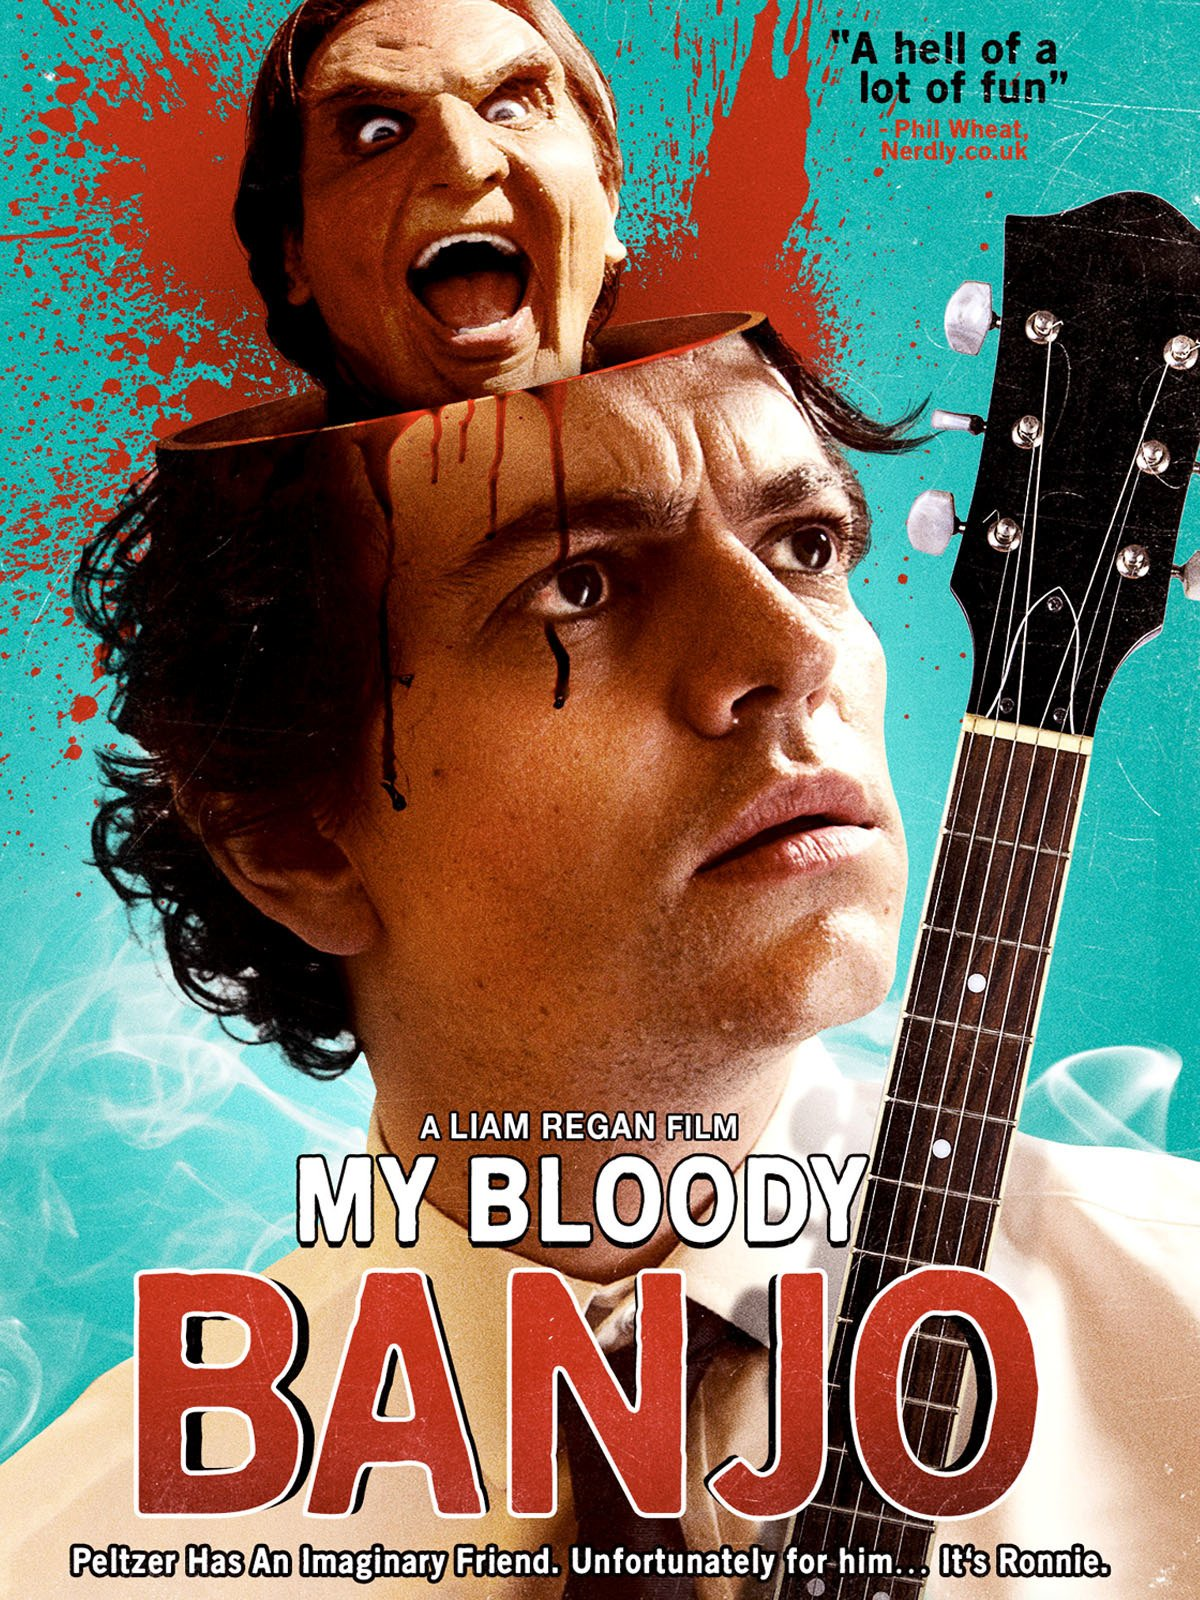 My Bloody Banjo